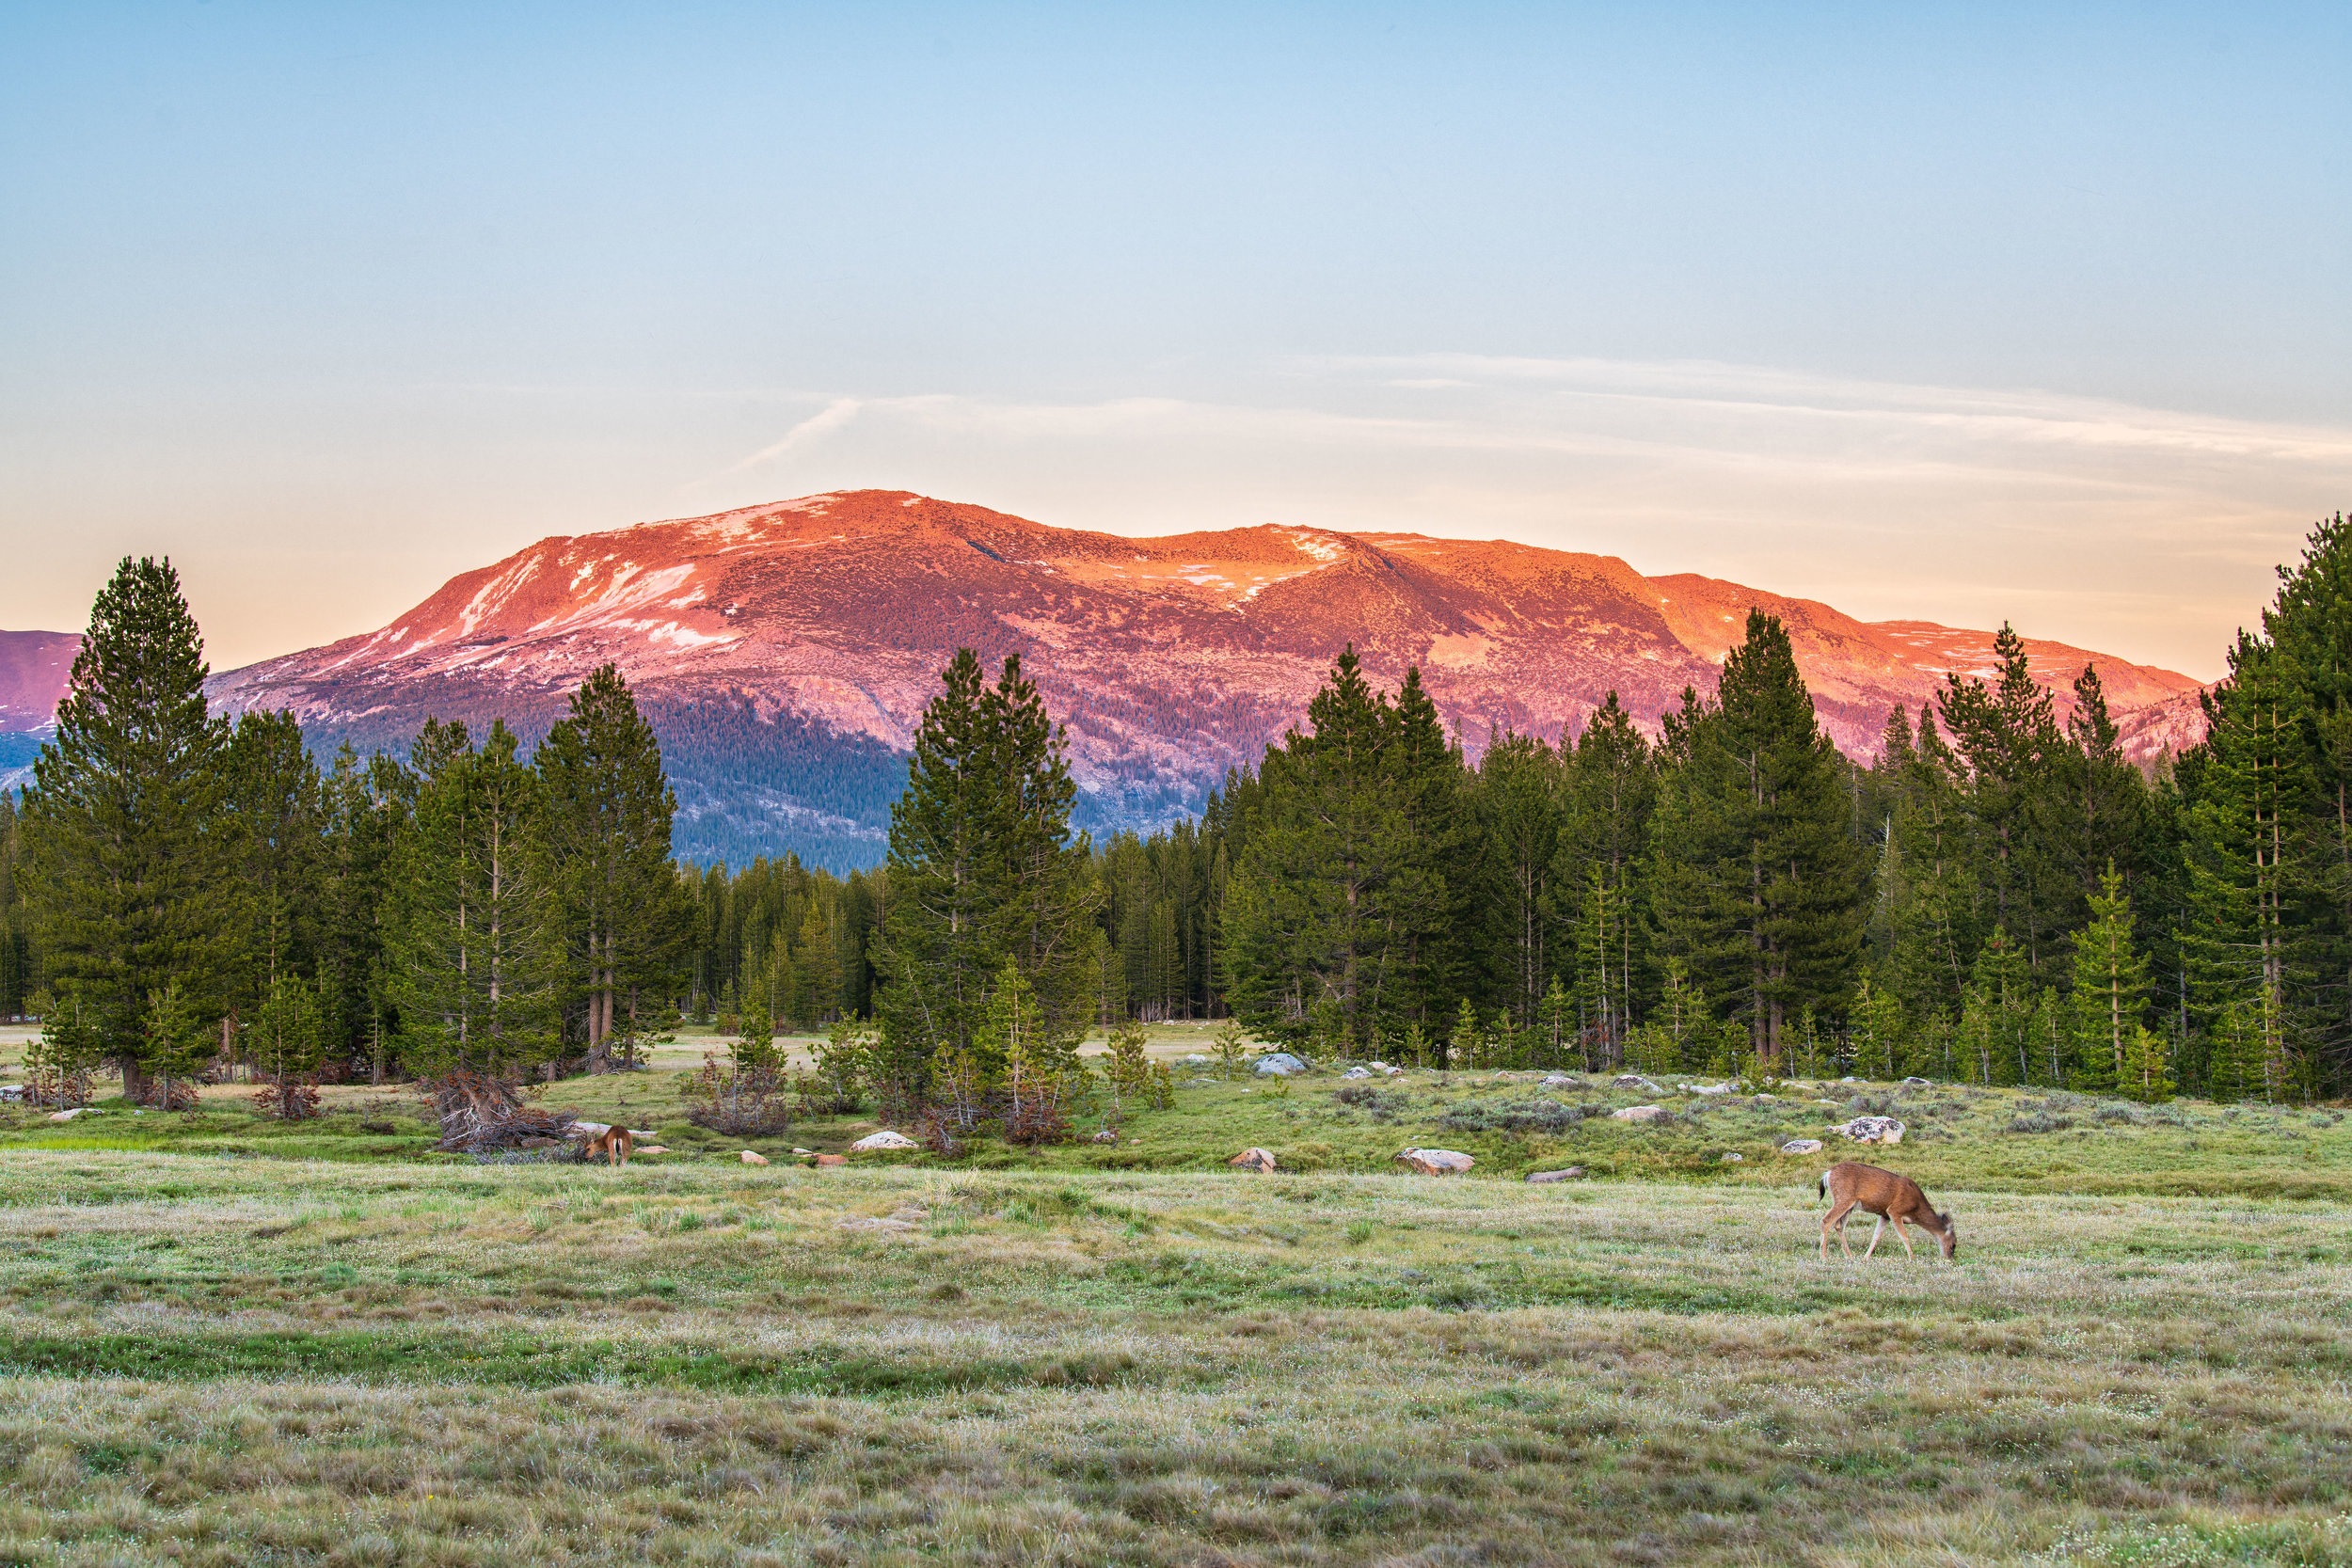 """Sunset at Tuolumne Meadow. (1/6 sec at f/8.0, iso64, 70-200mm len @70mm) GPS coordinate: 37°52'30.1""""N 119°21'60.0""""W"""